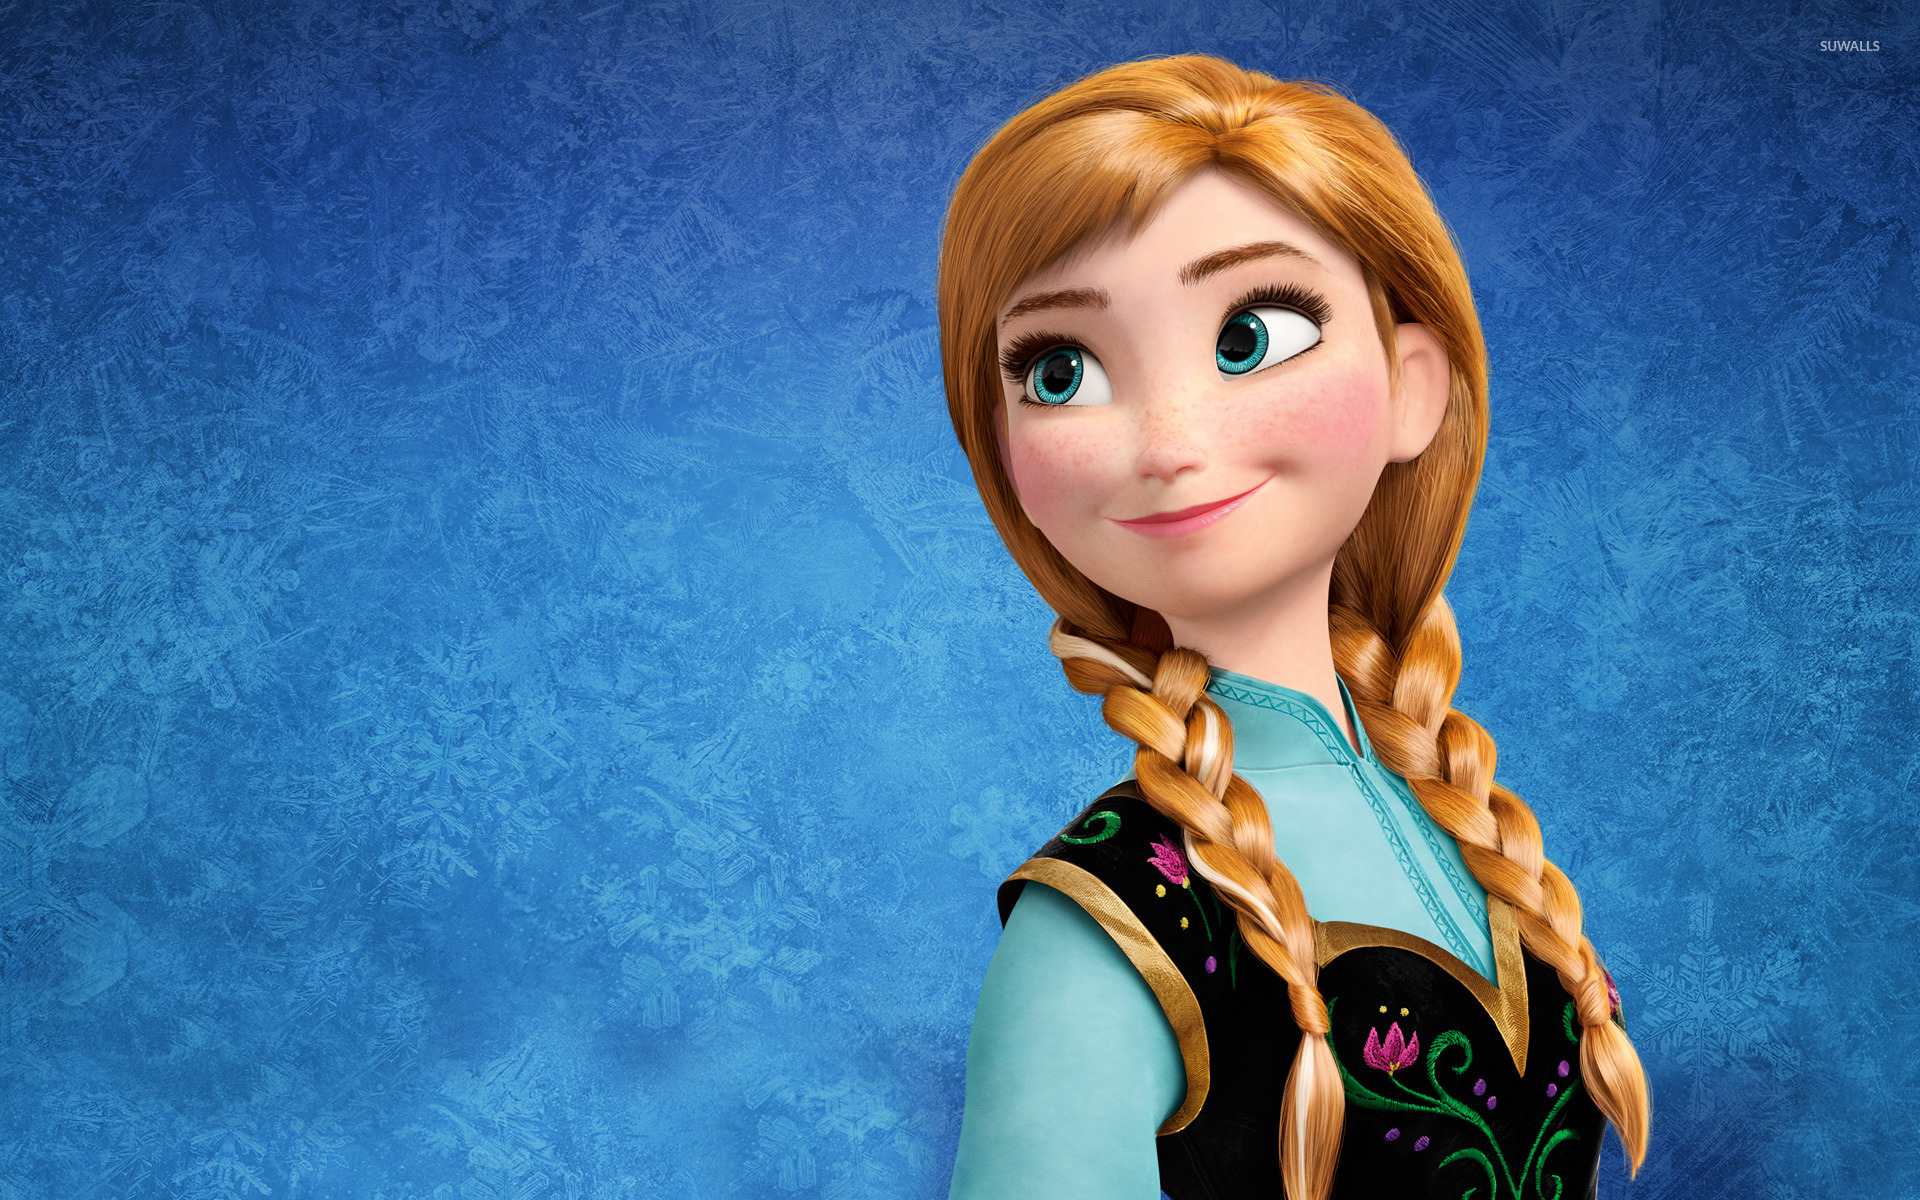 Anna Frozen Wallpaper Anna Frozen 49216 Hd Wallpaper